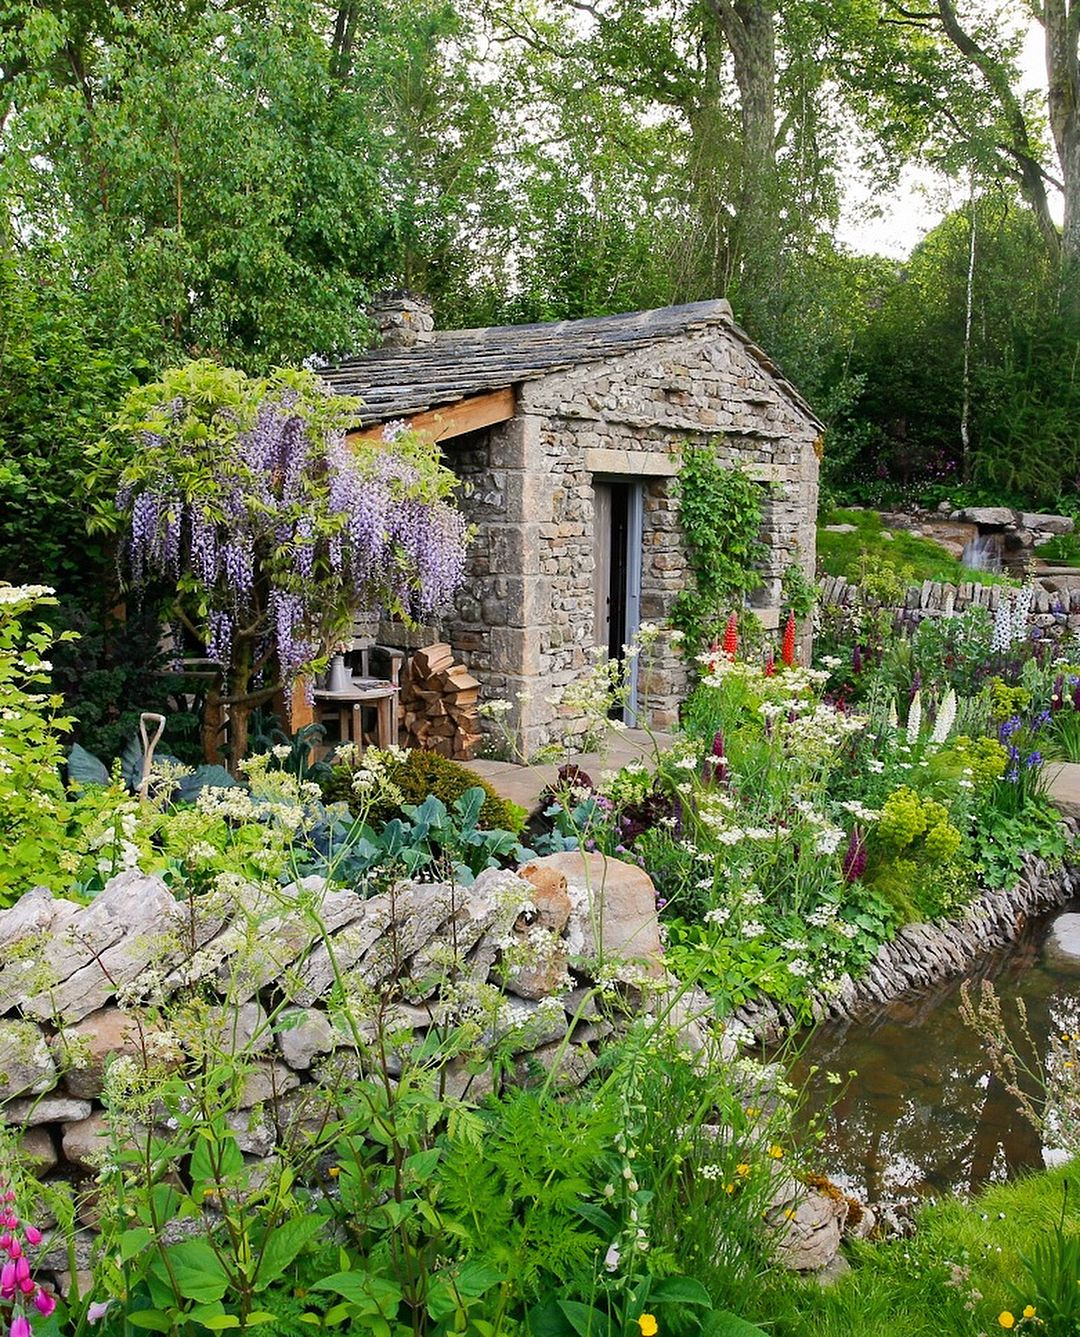 In Pictures: Highlights of the spectacular show gardens at the RHS Chelsea Flower Show 2018 from the team at BBC Gardeners' World Magazine.